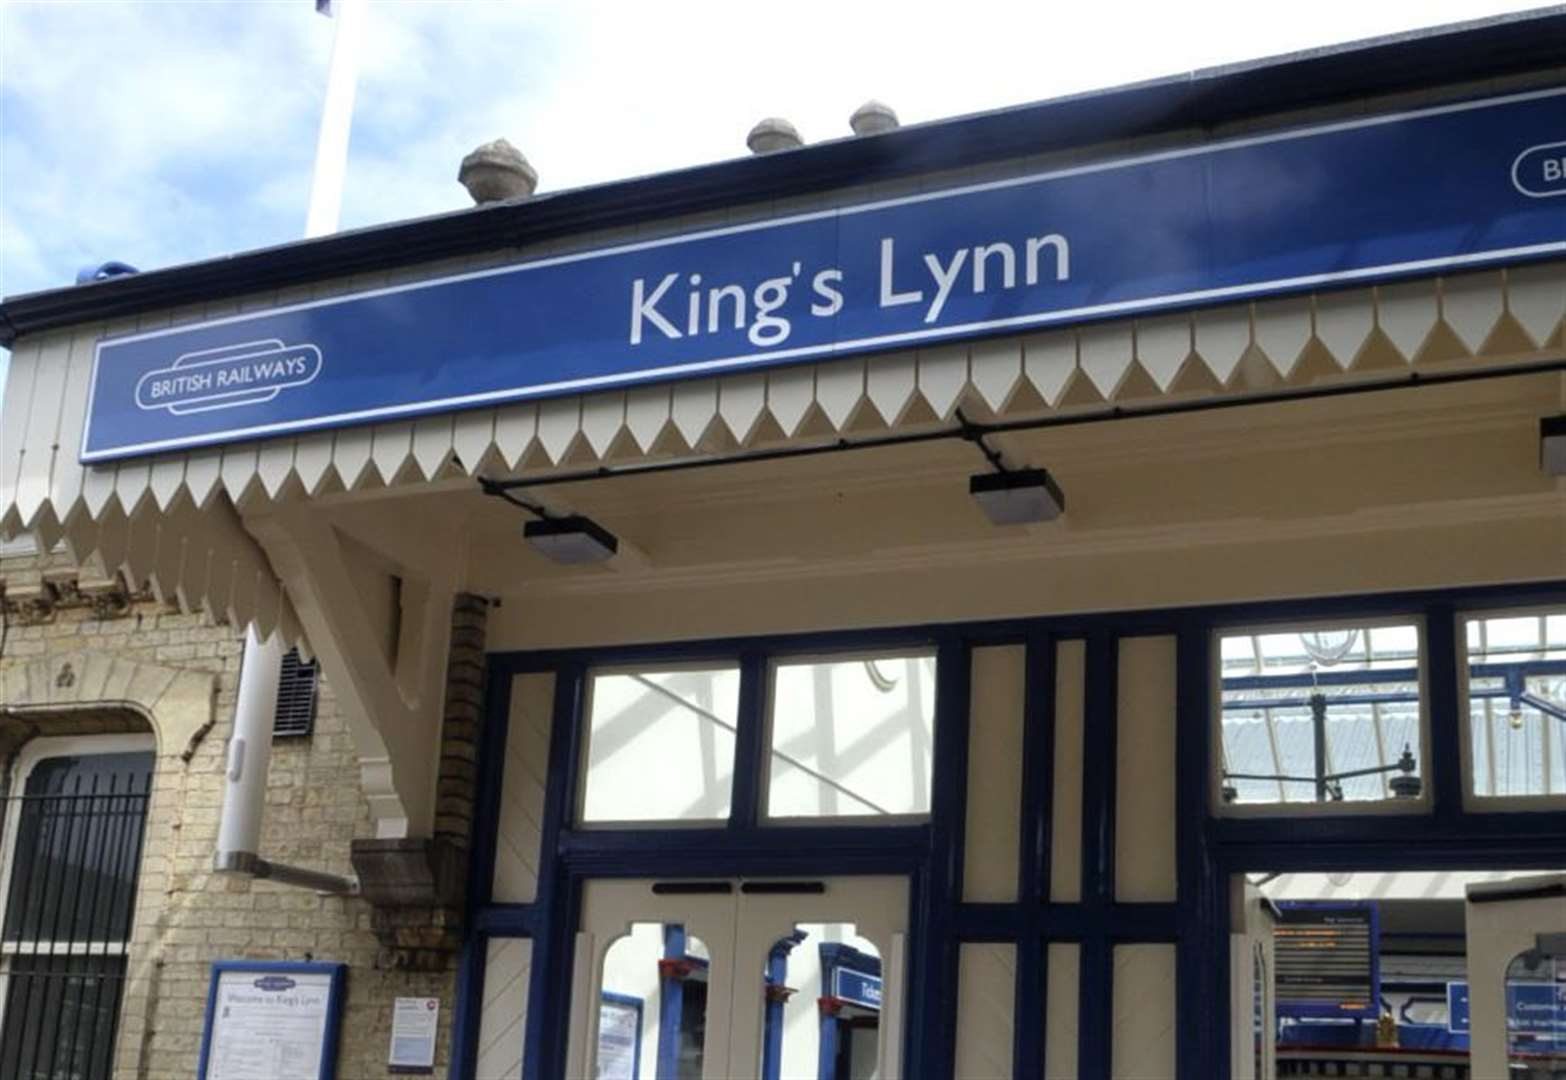 It's a bad day on the trains as King's Lynn passengers face more disruption